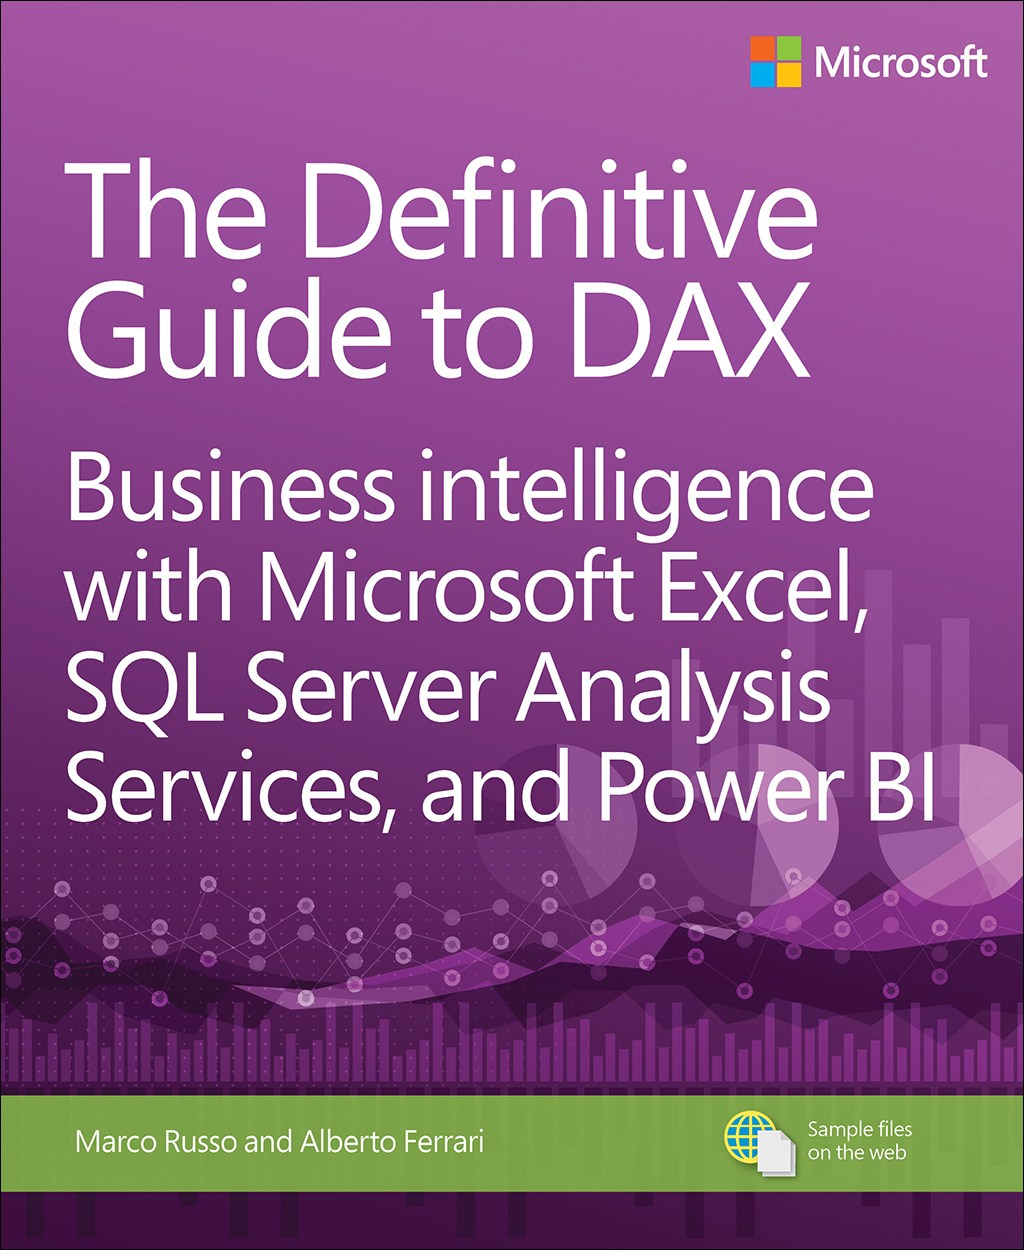 Definitive Guide to DAX, The: Business intelligence with Microsoft Excel, SQL Server Analysis Services, and Power BI